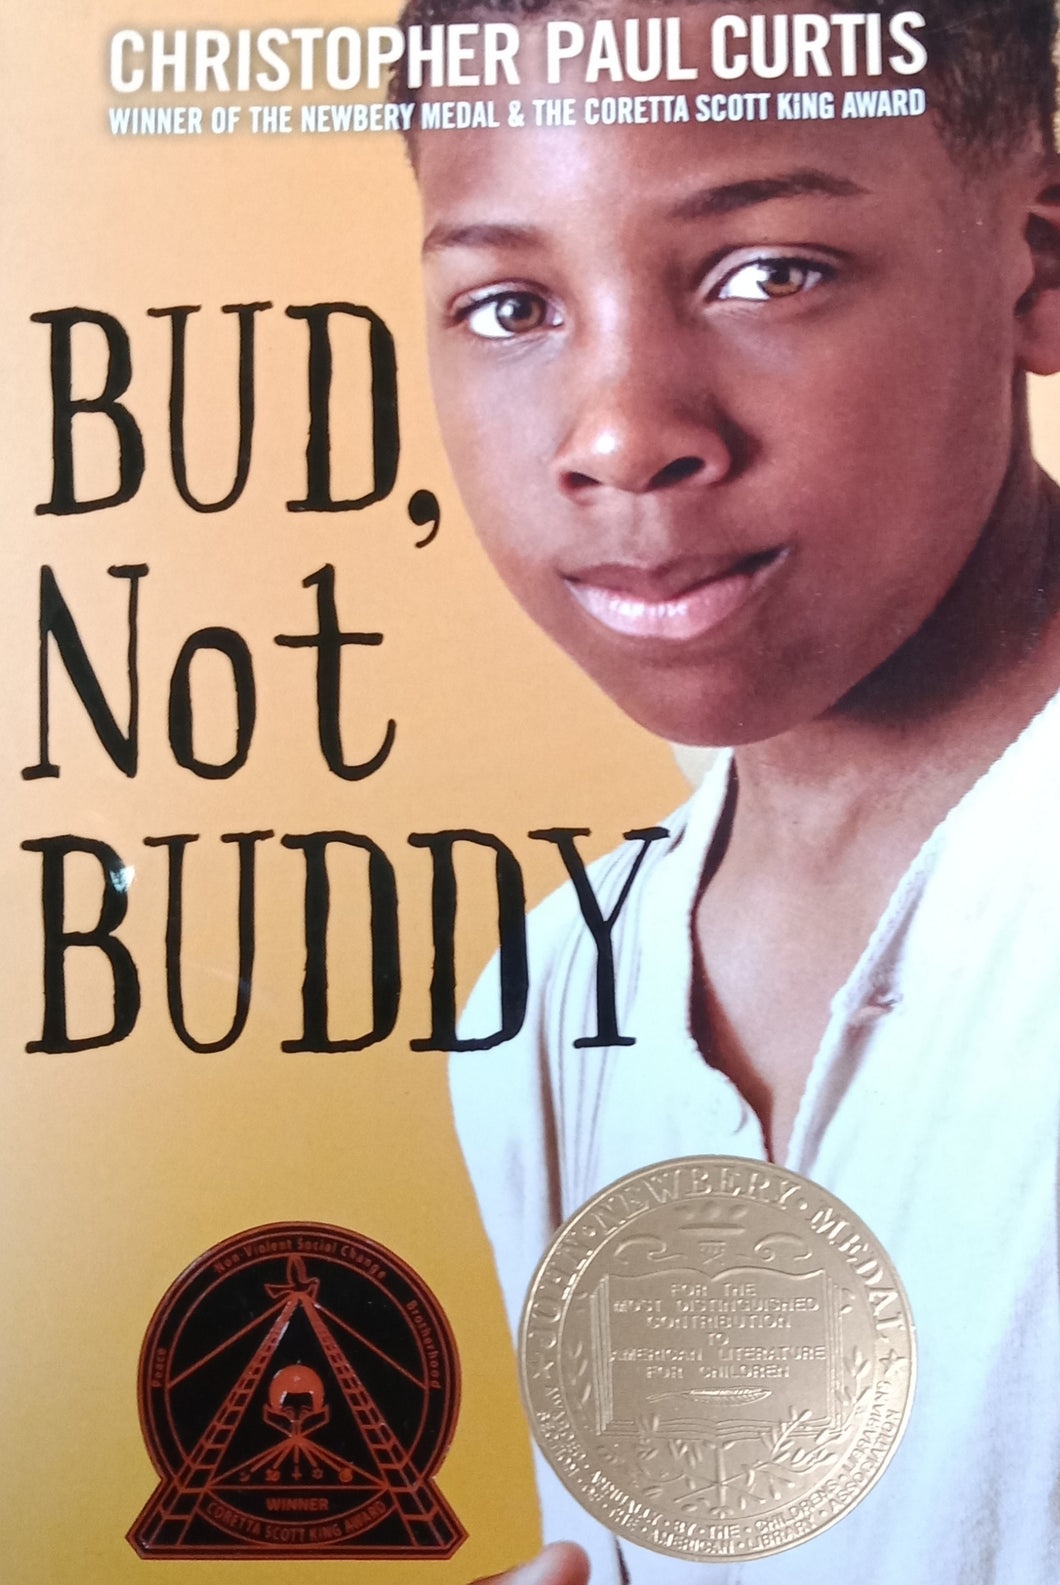 Bud,Not Buddy by Christopher Paul Curtis